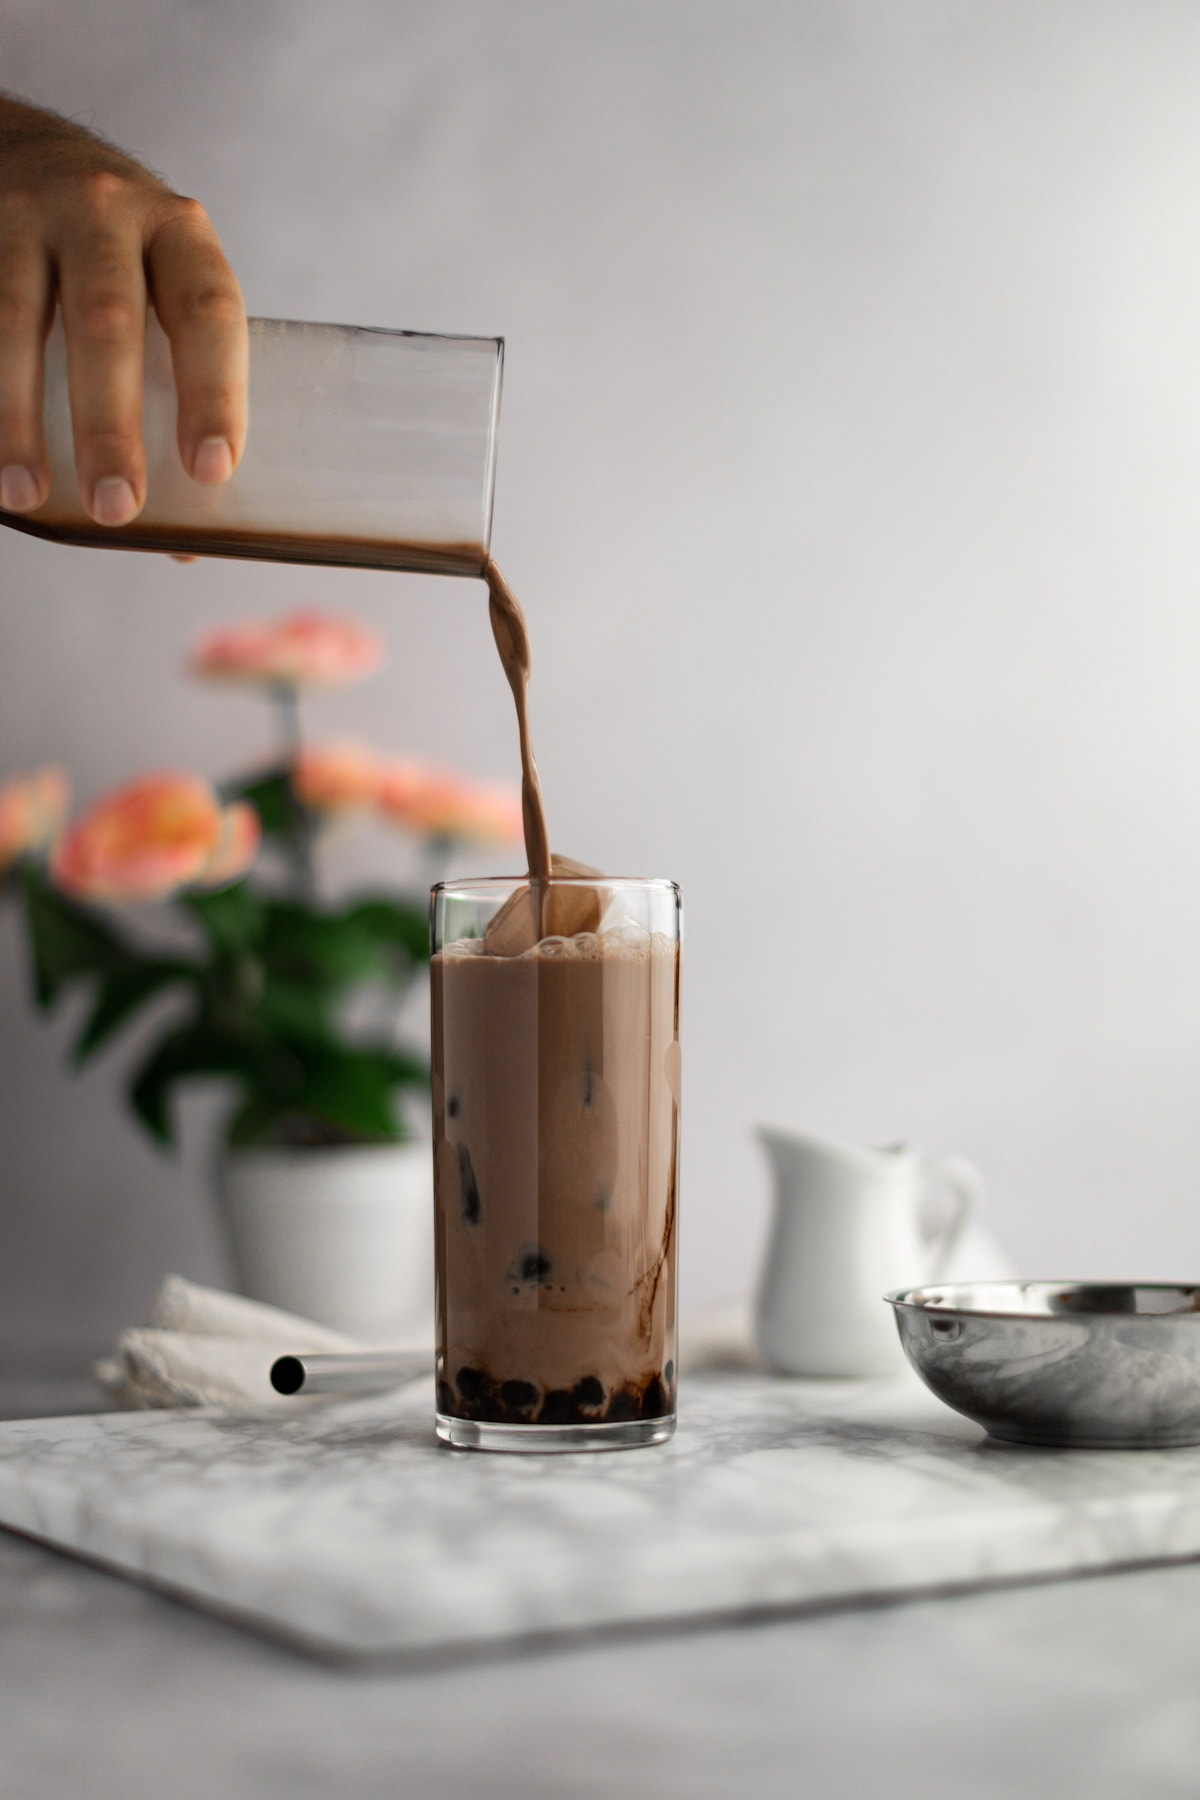 Chocolate bubble tea being poured into an almost full glass, on a grey board, with pink flowers in the background.